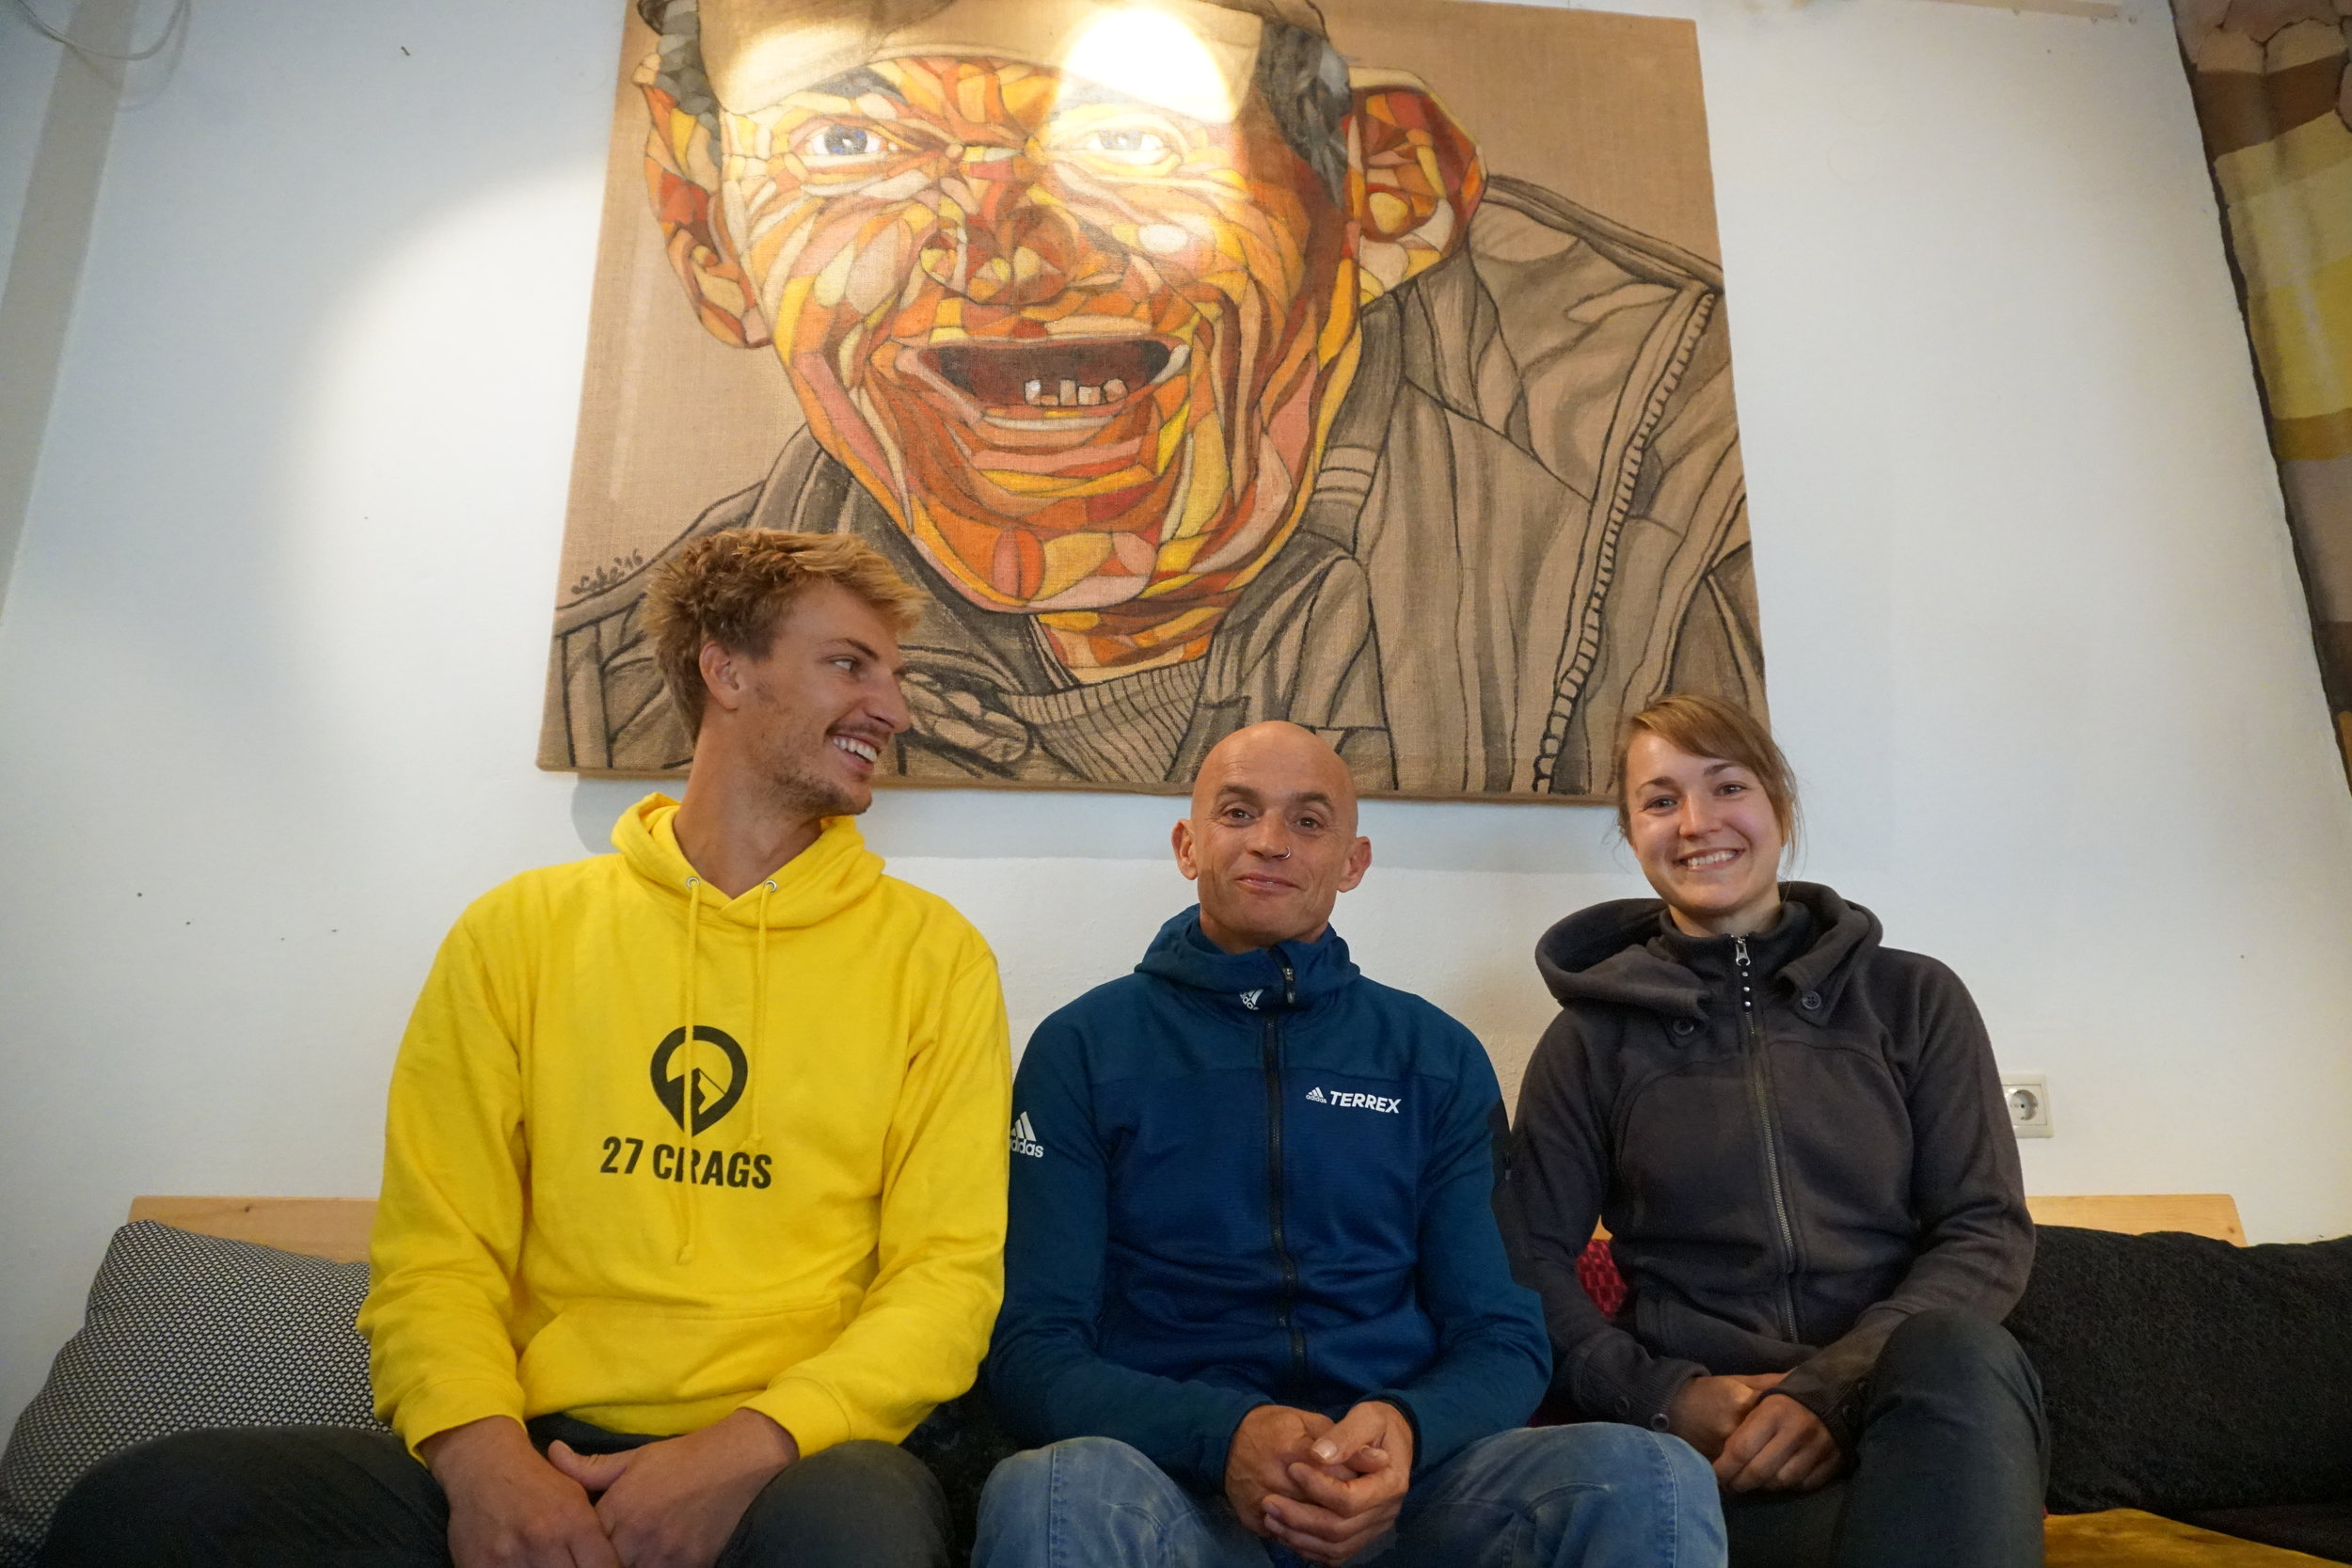 Dicki Korb in a cafeteria in Leonidio and Tim and Hanna from 27 Crags next to him.